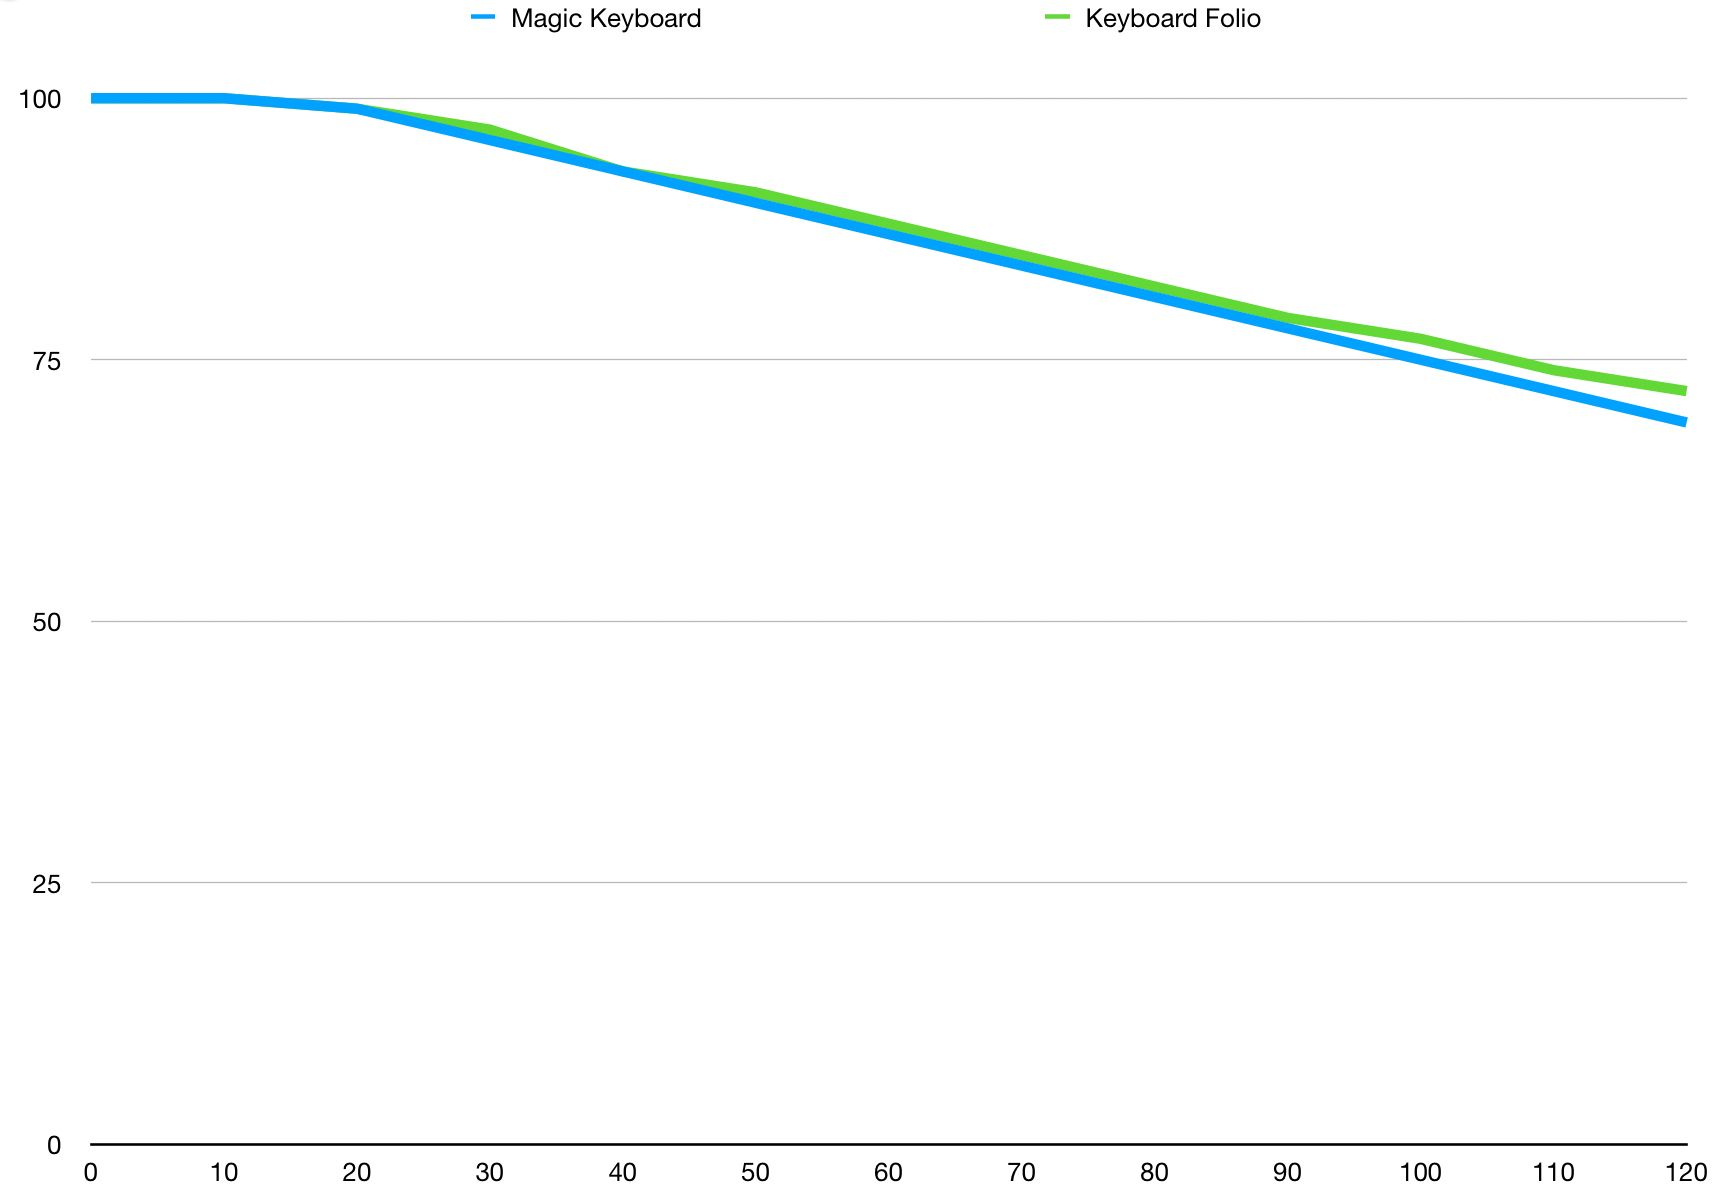 Does the Magic Keyboard Kill iPad Battery? (or: Another Boring Chart)